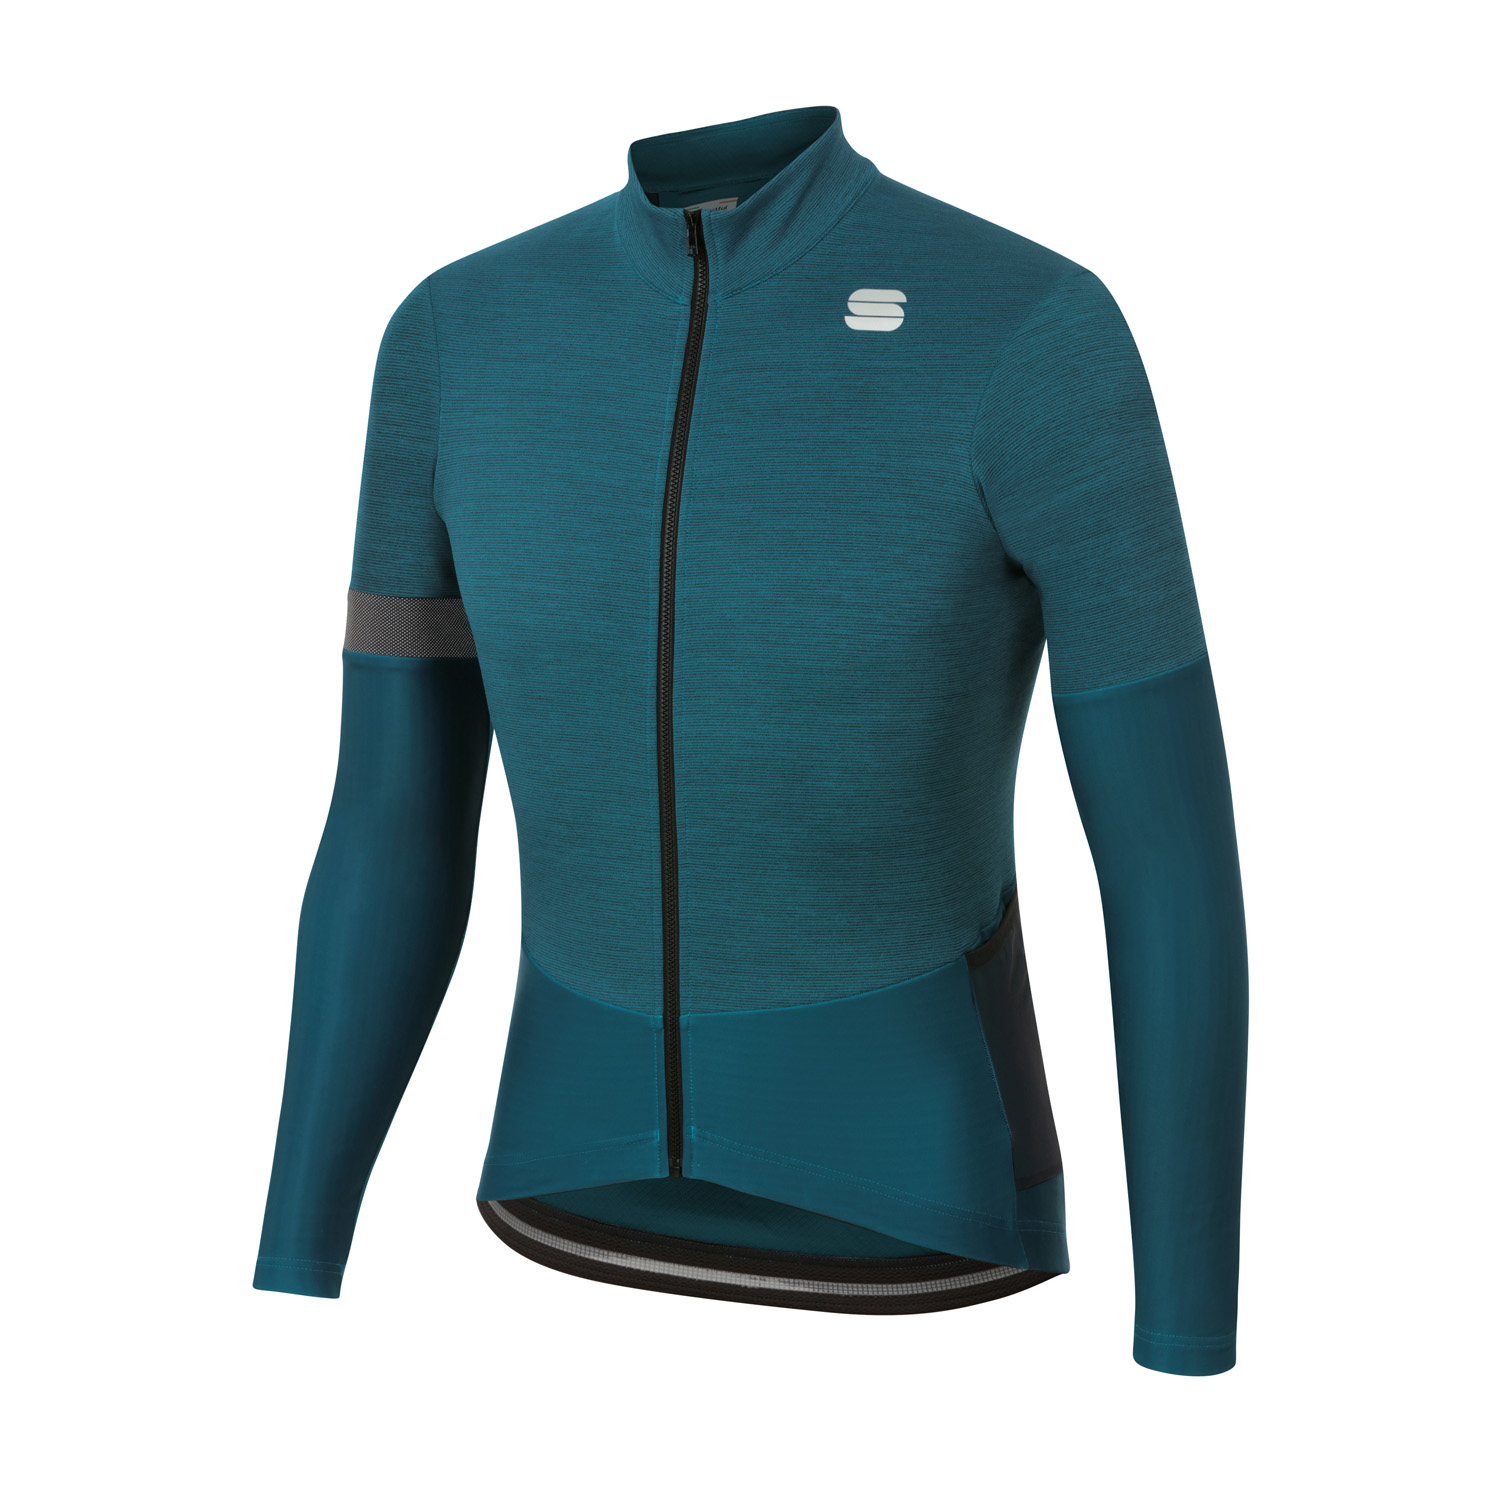 | Sportful Fietsshirt lange mouwen Heren Blauw - SUPERGIARA THERMAL JERSEY BLUE CORSAIR